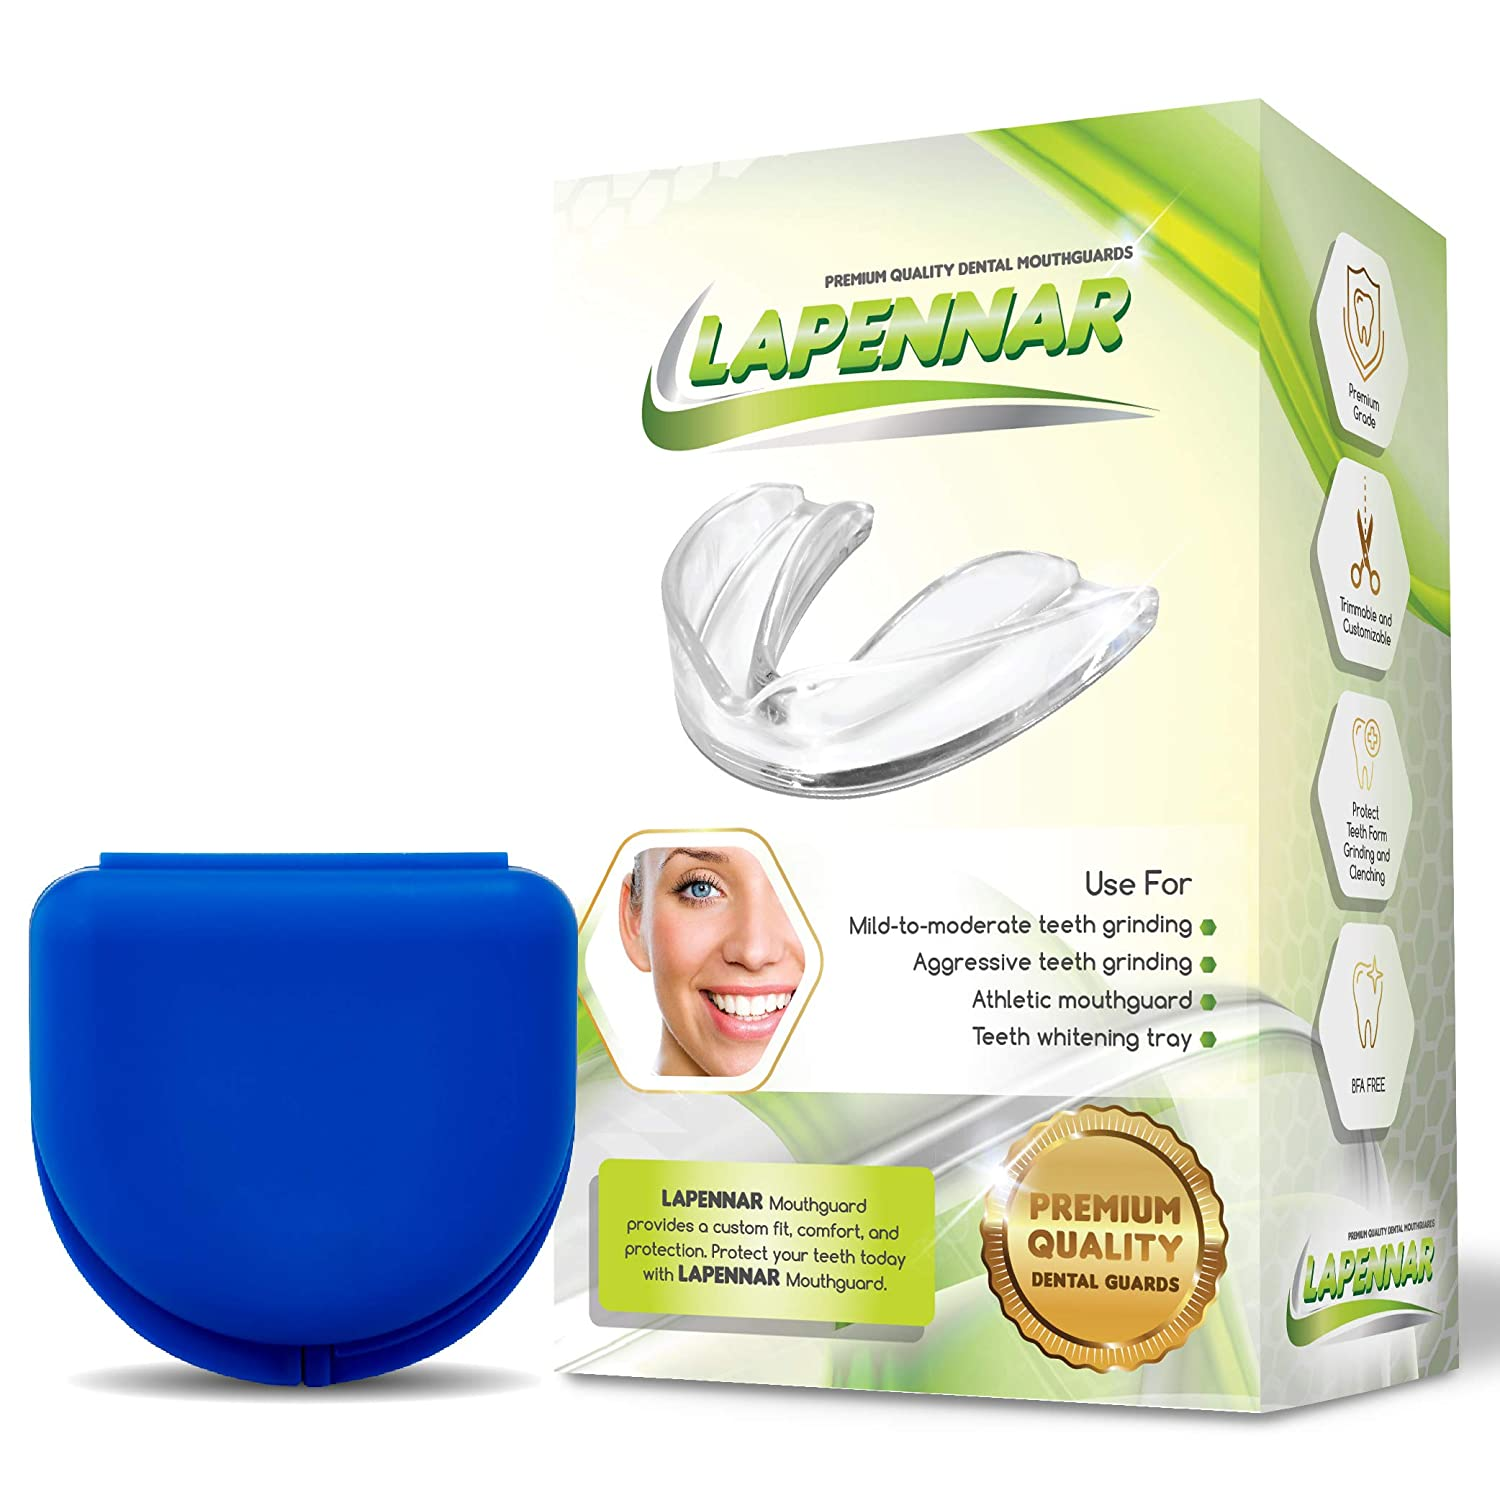 LAPENNAR - 2 Size, Pack of 6 Moldable Mouth Guard for Grinding Teeth Cleanching Bruxism